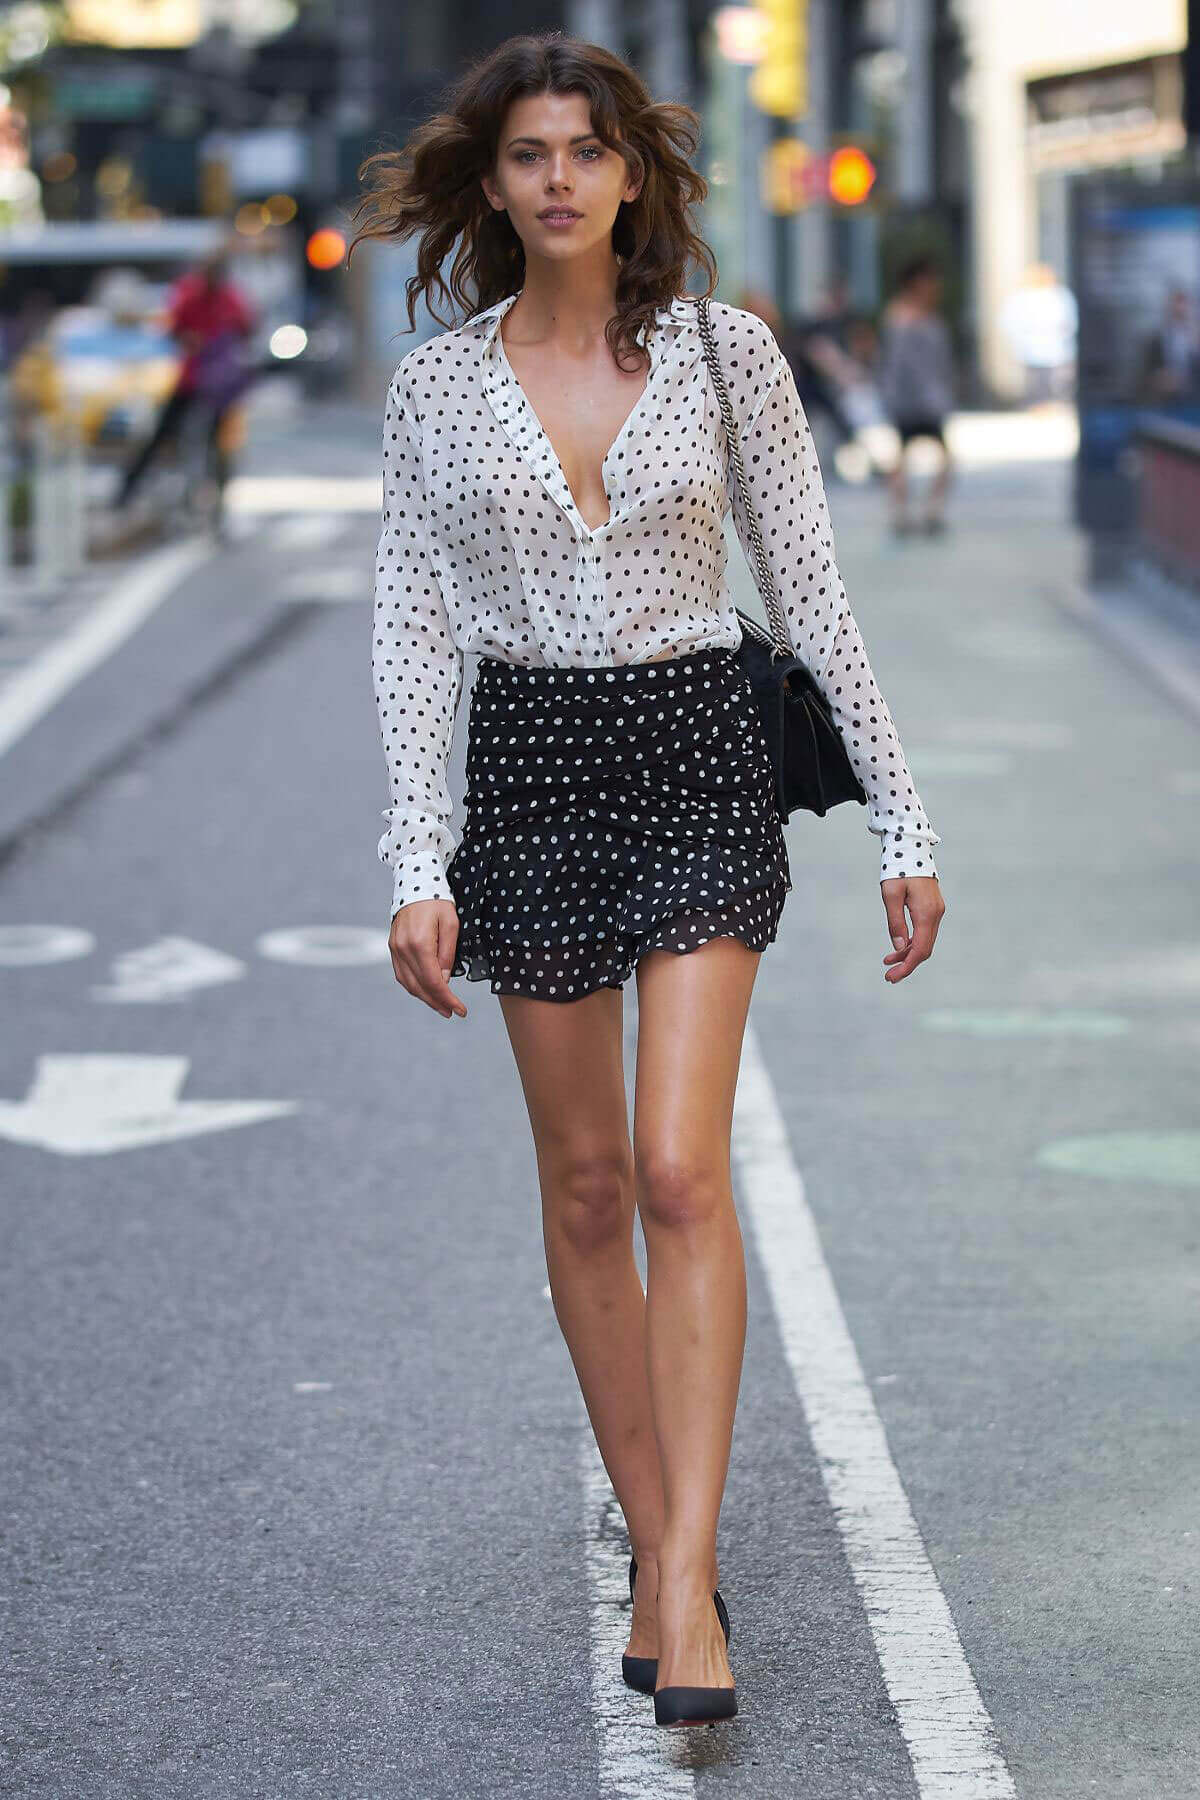 Georgia Fowler shows off legs at Fittings for Victoria's Secret Fashion Show in New York